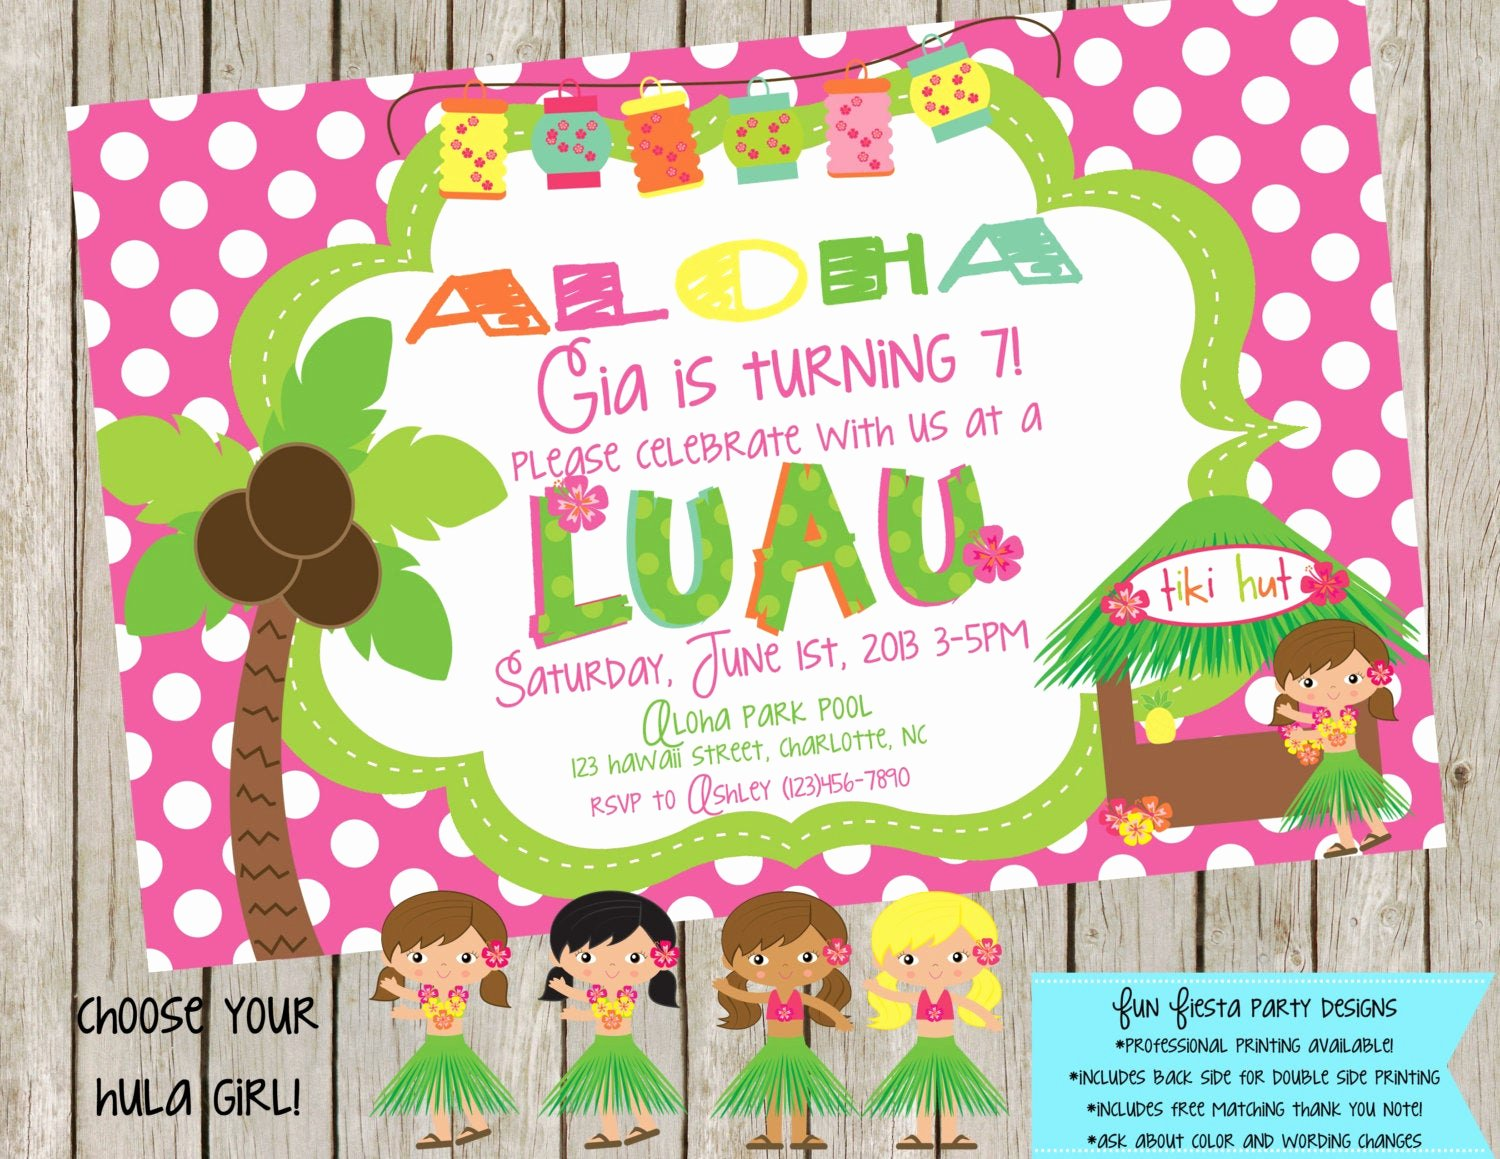 Party Thank You Note Fresh Luau Party Invitation and Matching Thank You Note